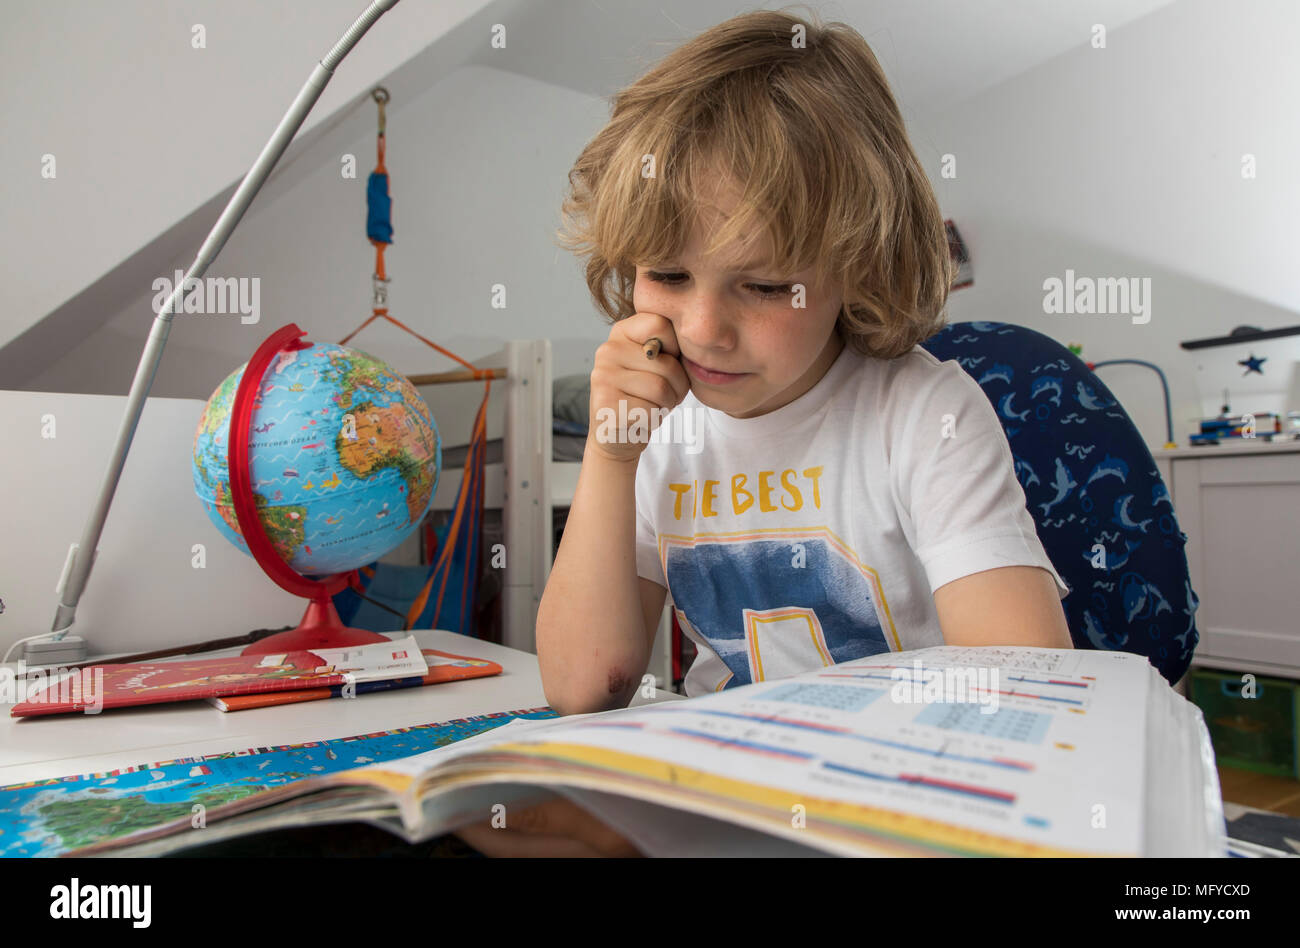 Boy, elementary school student, 8 years old, learns for school at home, does homework, Mathematics, Stock Photo